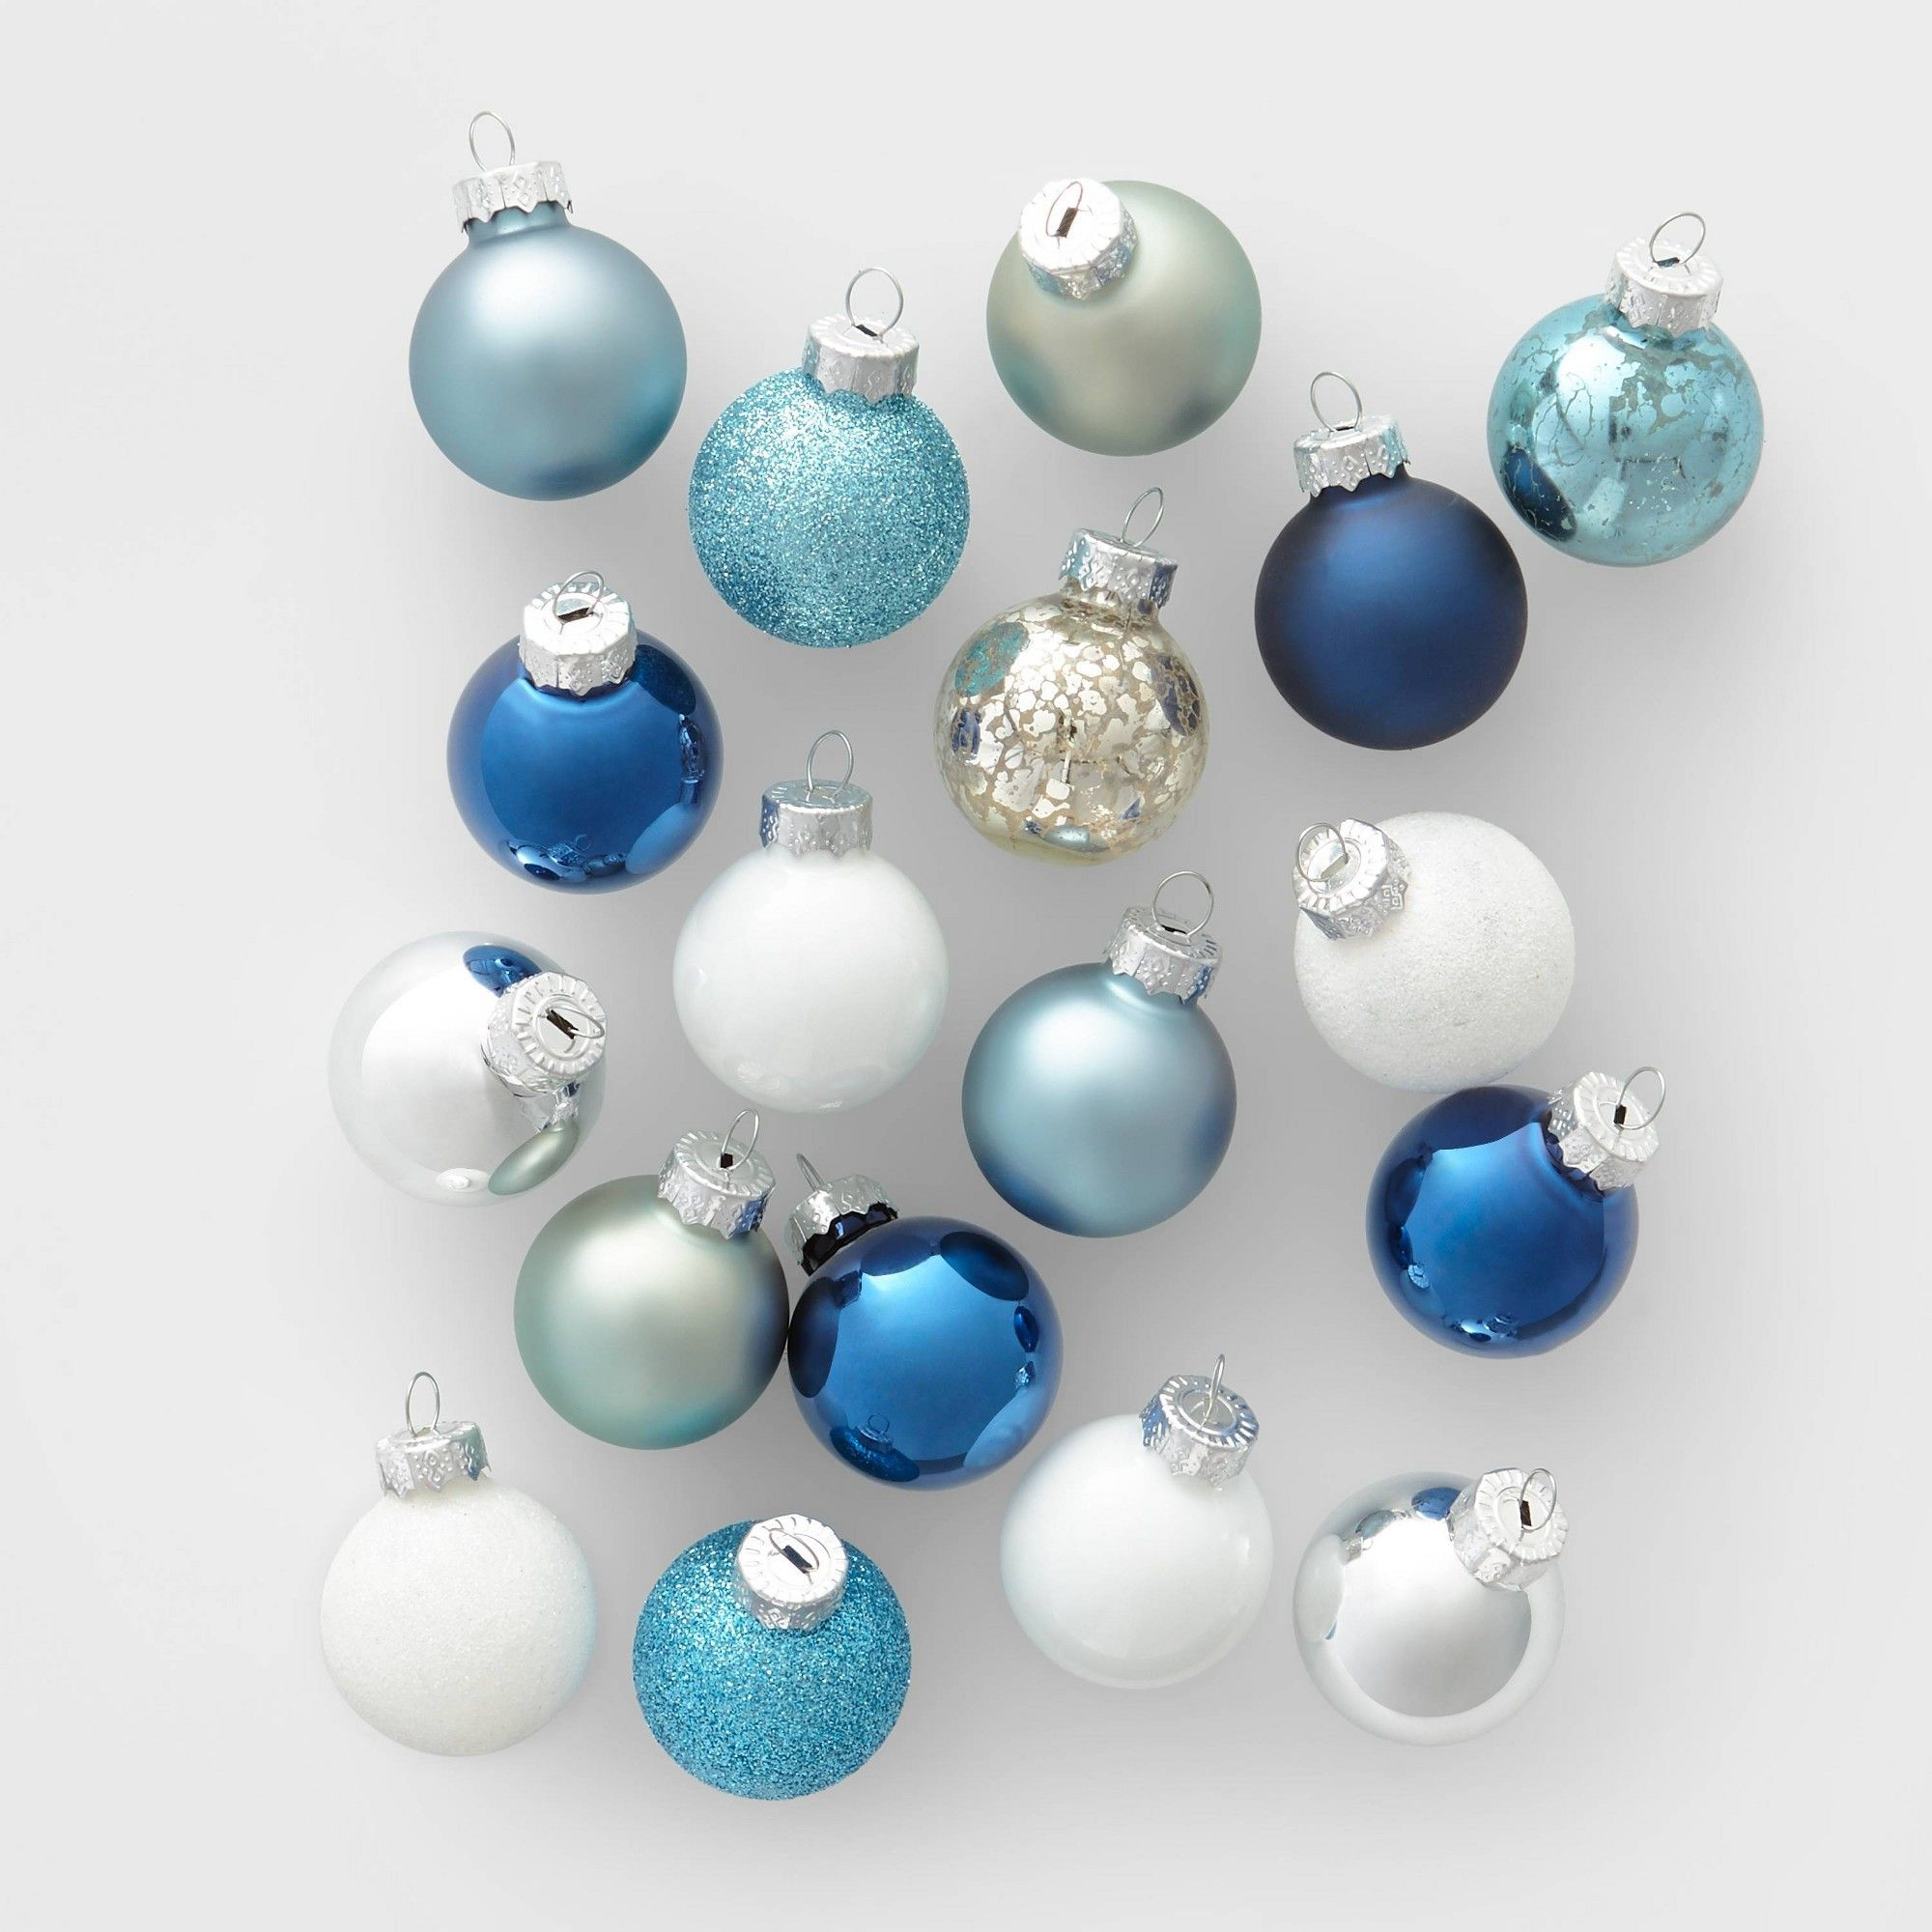 18ct Mini Glass Round Christmas Ornament Set Blue Silver